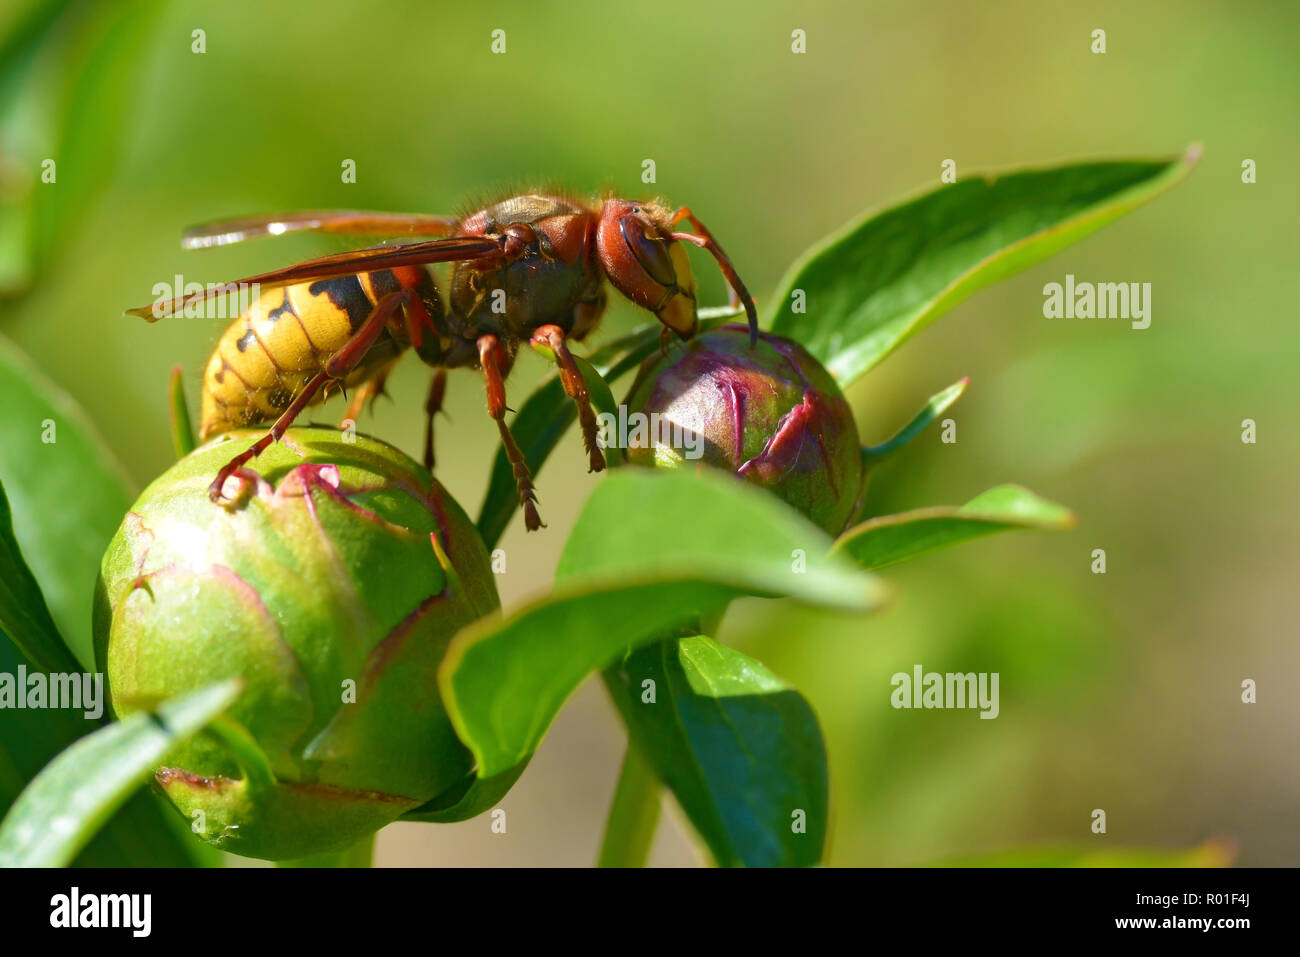 Closeup European hornet (Vespa crabro) on bud of peony flower seen from profile - Stock Image